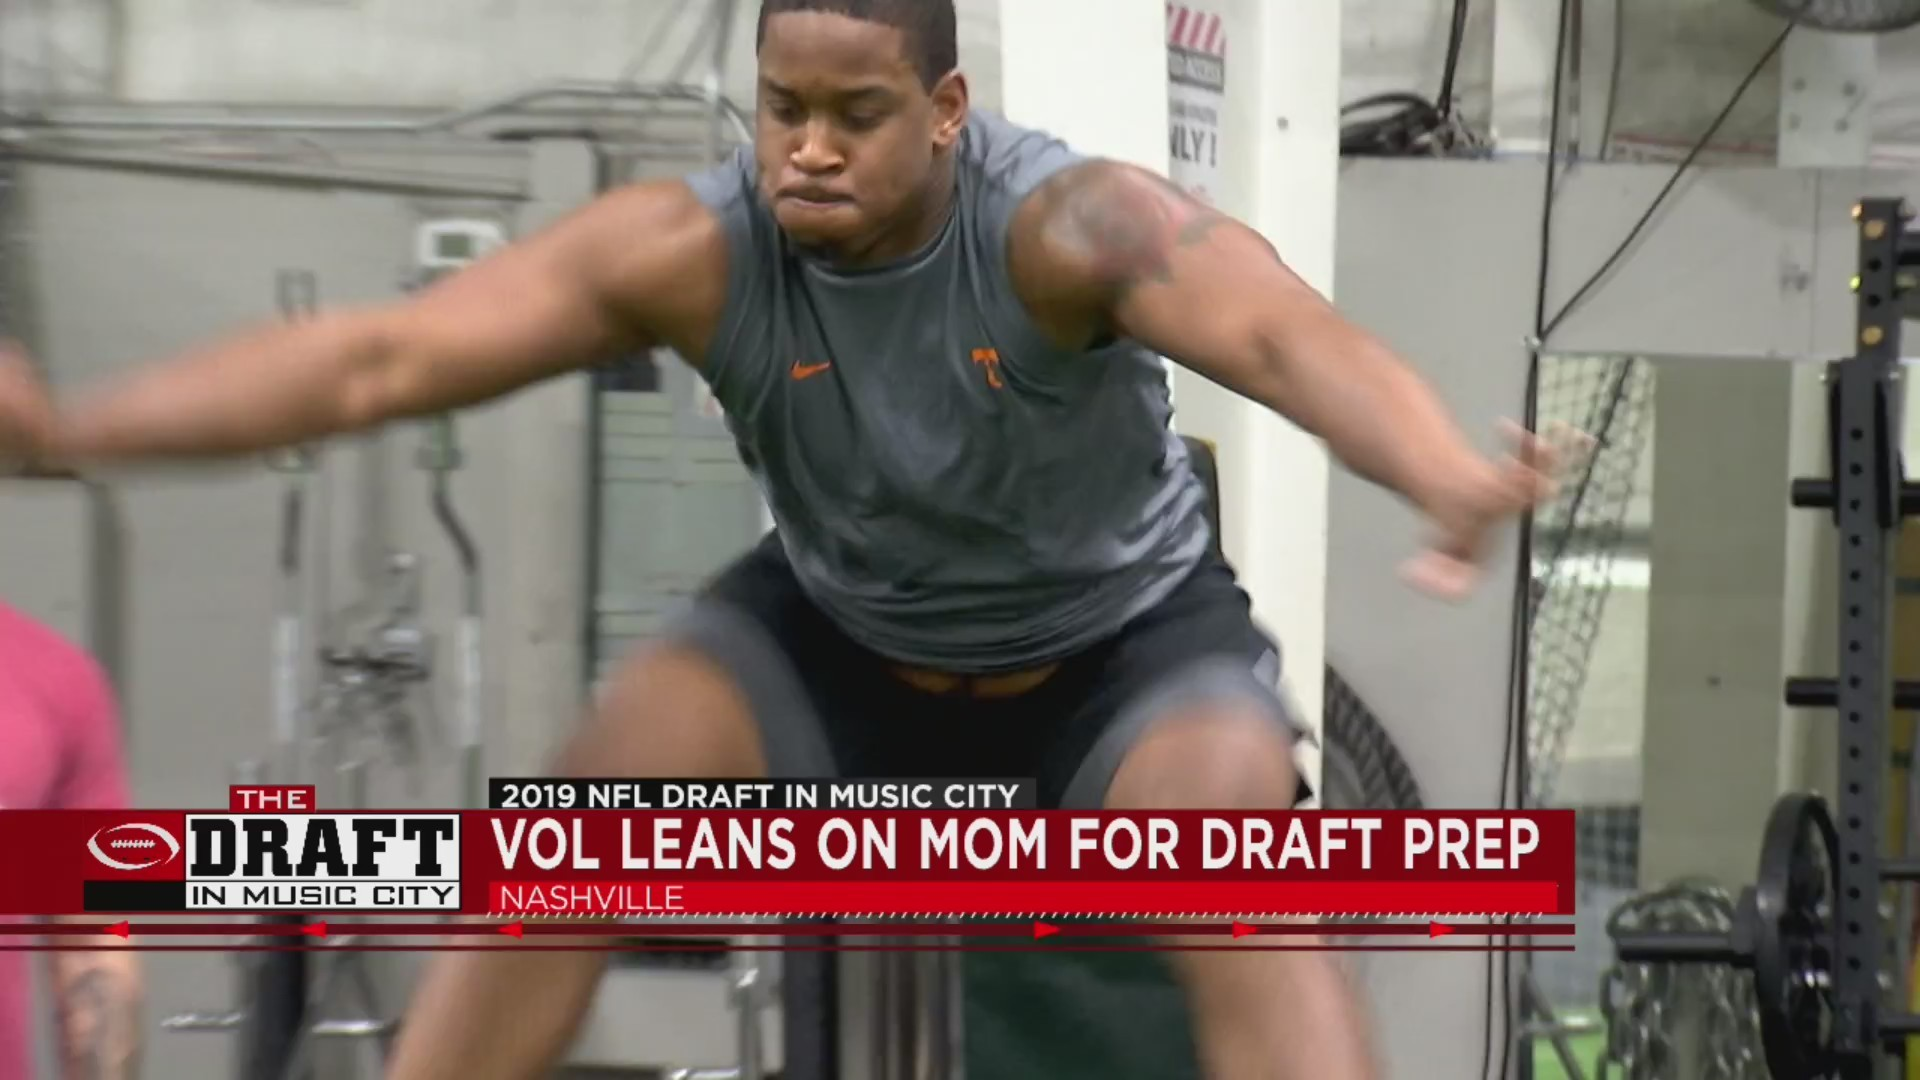 Kyle Phillips prepares for draft, son of TSU Athletic Director